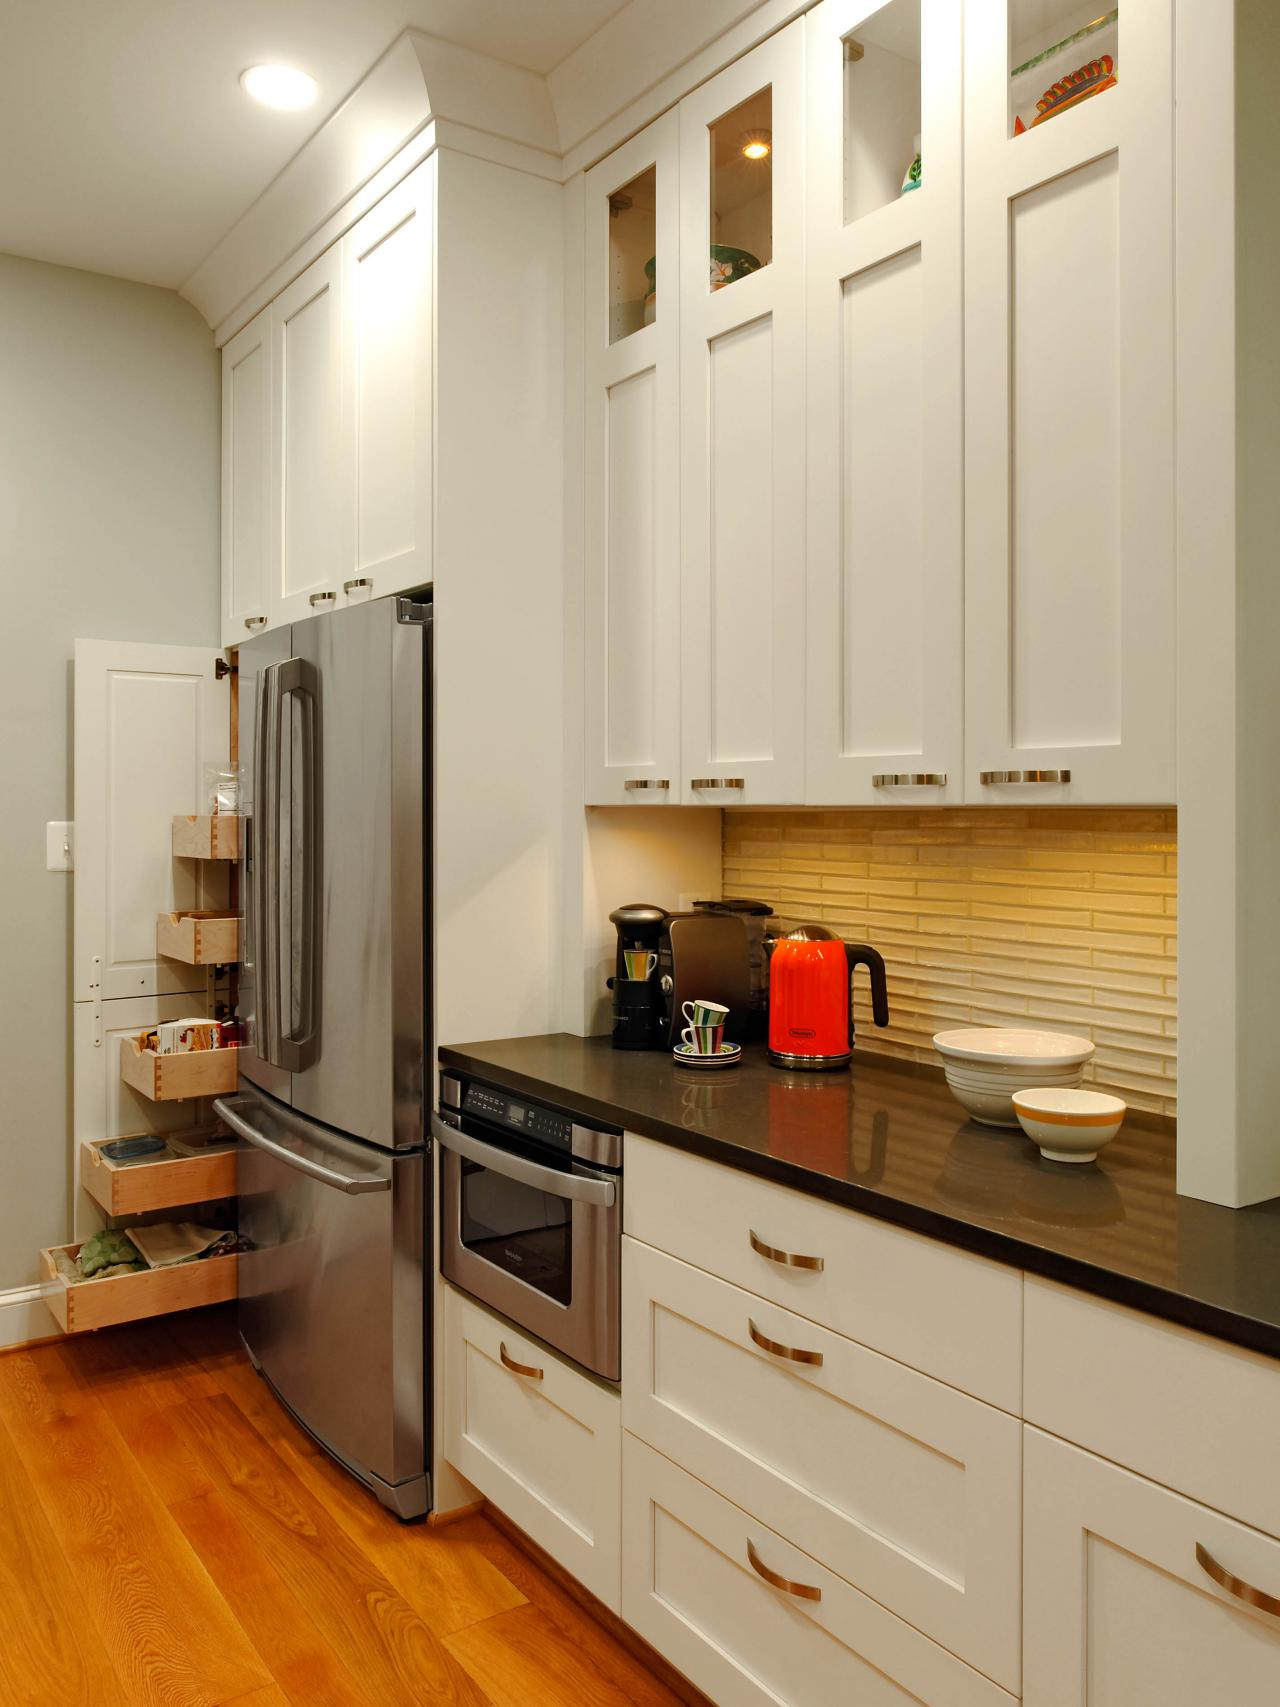 Kitchen cabinet prices pictures ideas tips from hgtv for Cabinetry kitchen cabinets